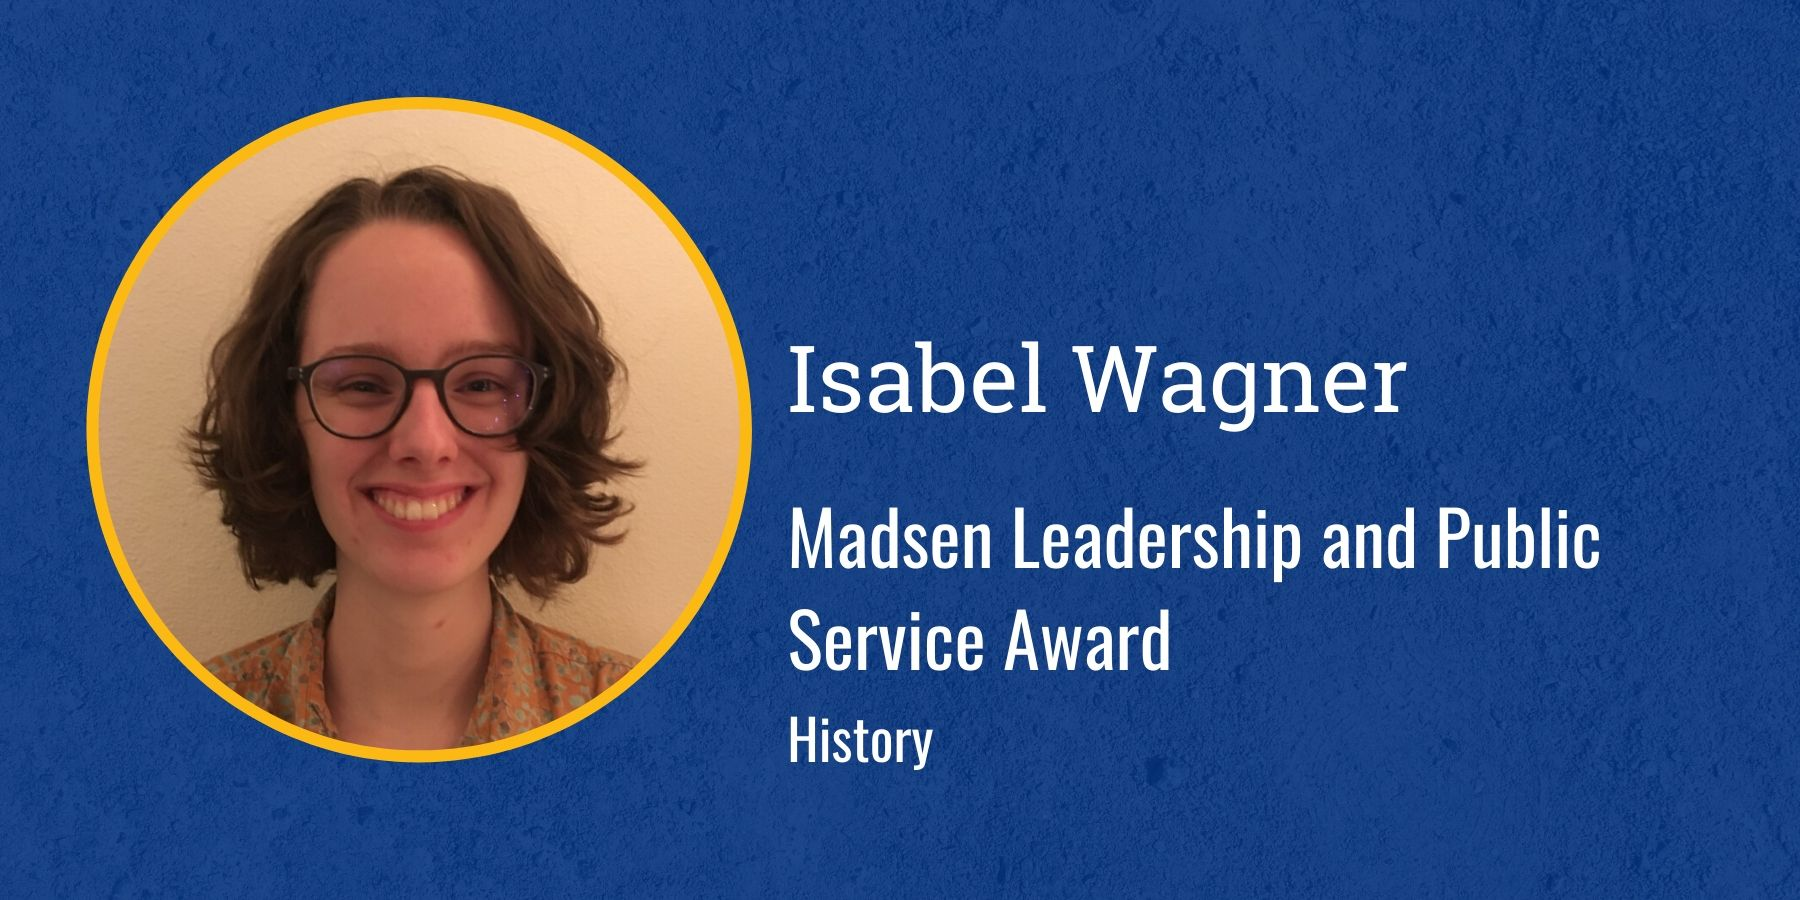 Photo of Isabel Wagner and text Madsen Leadership and Public Service Award, History